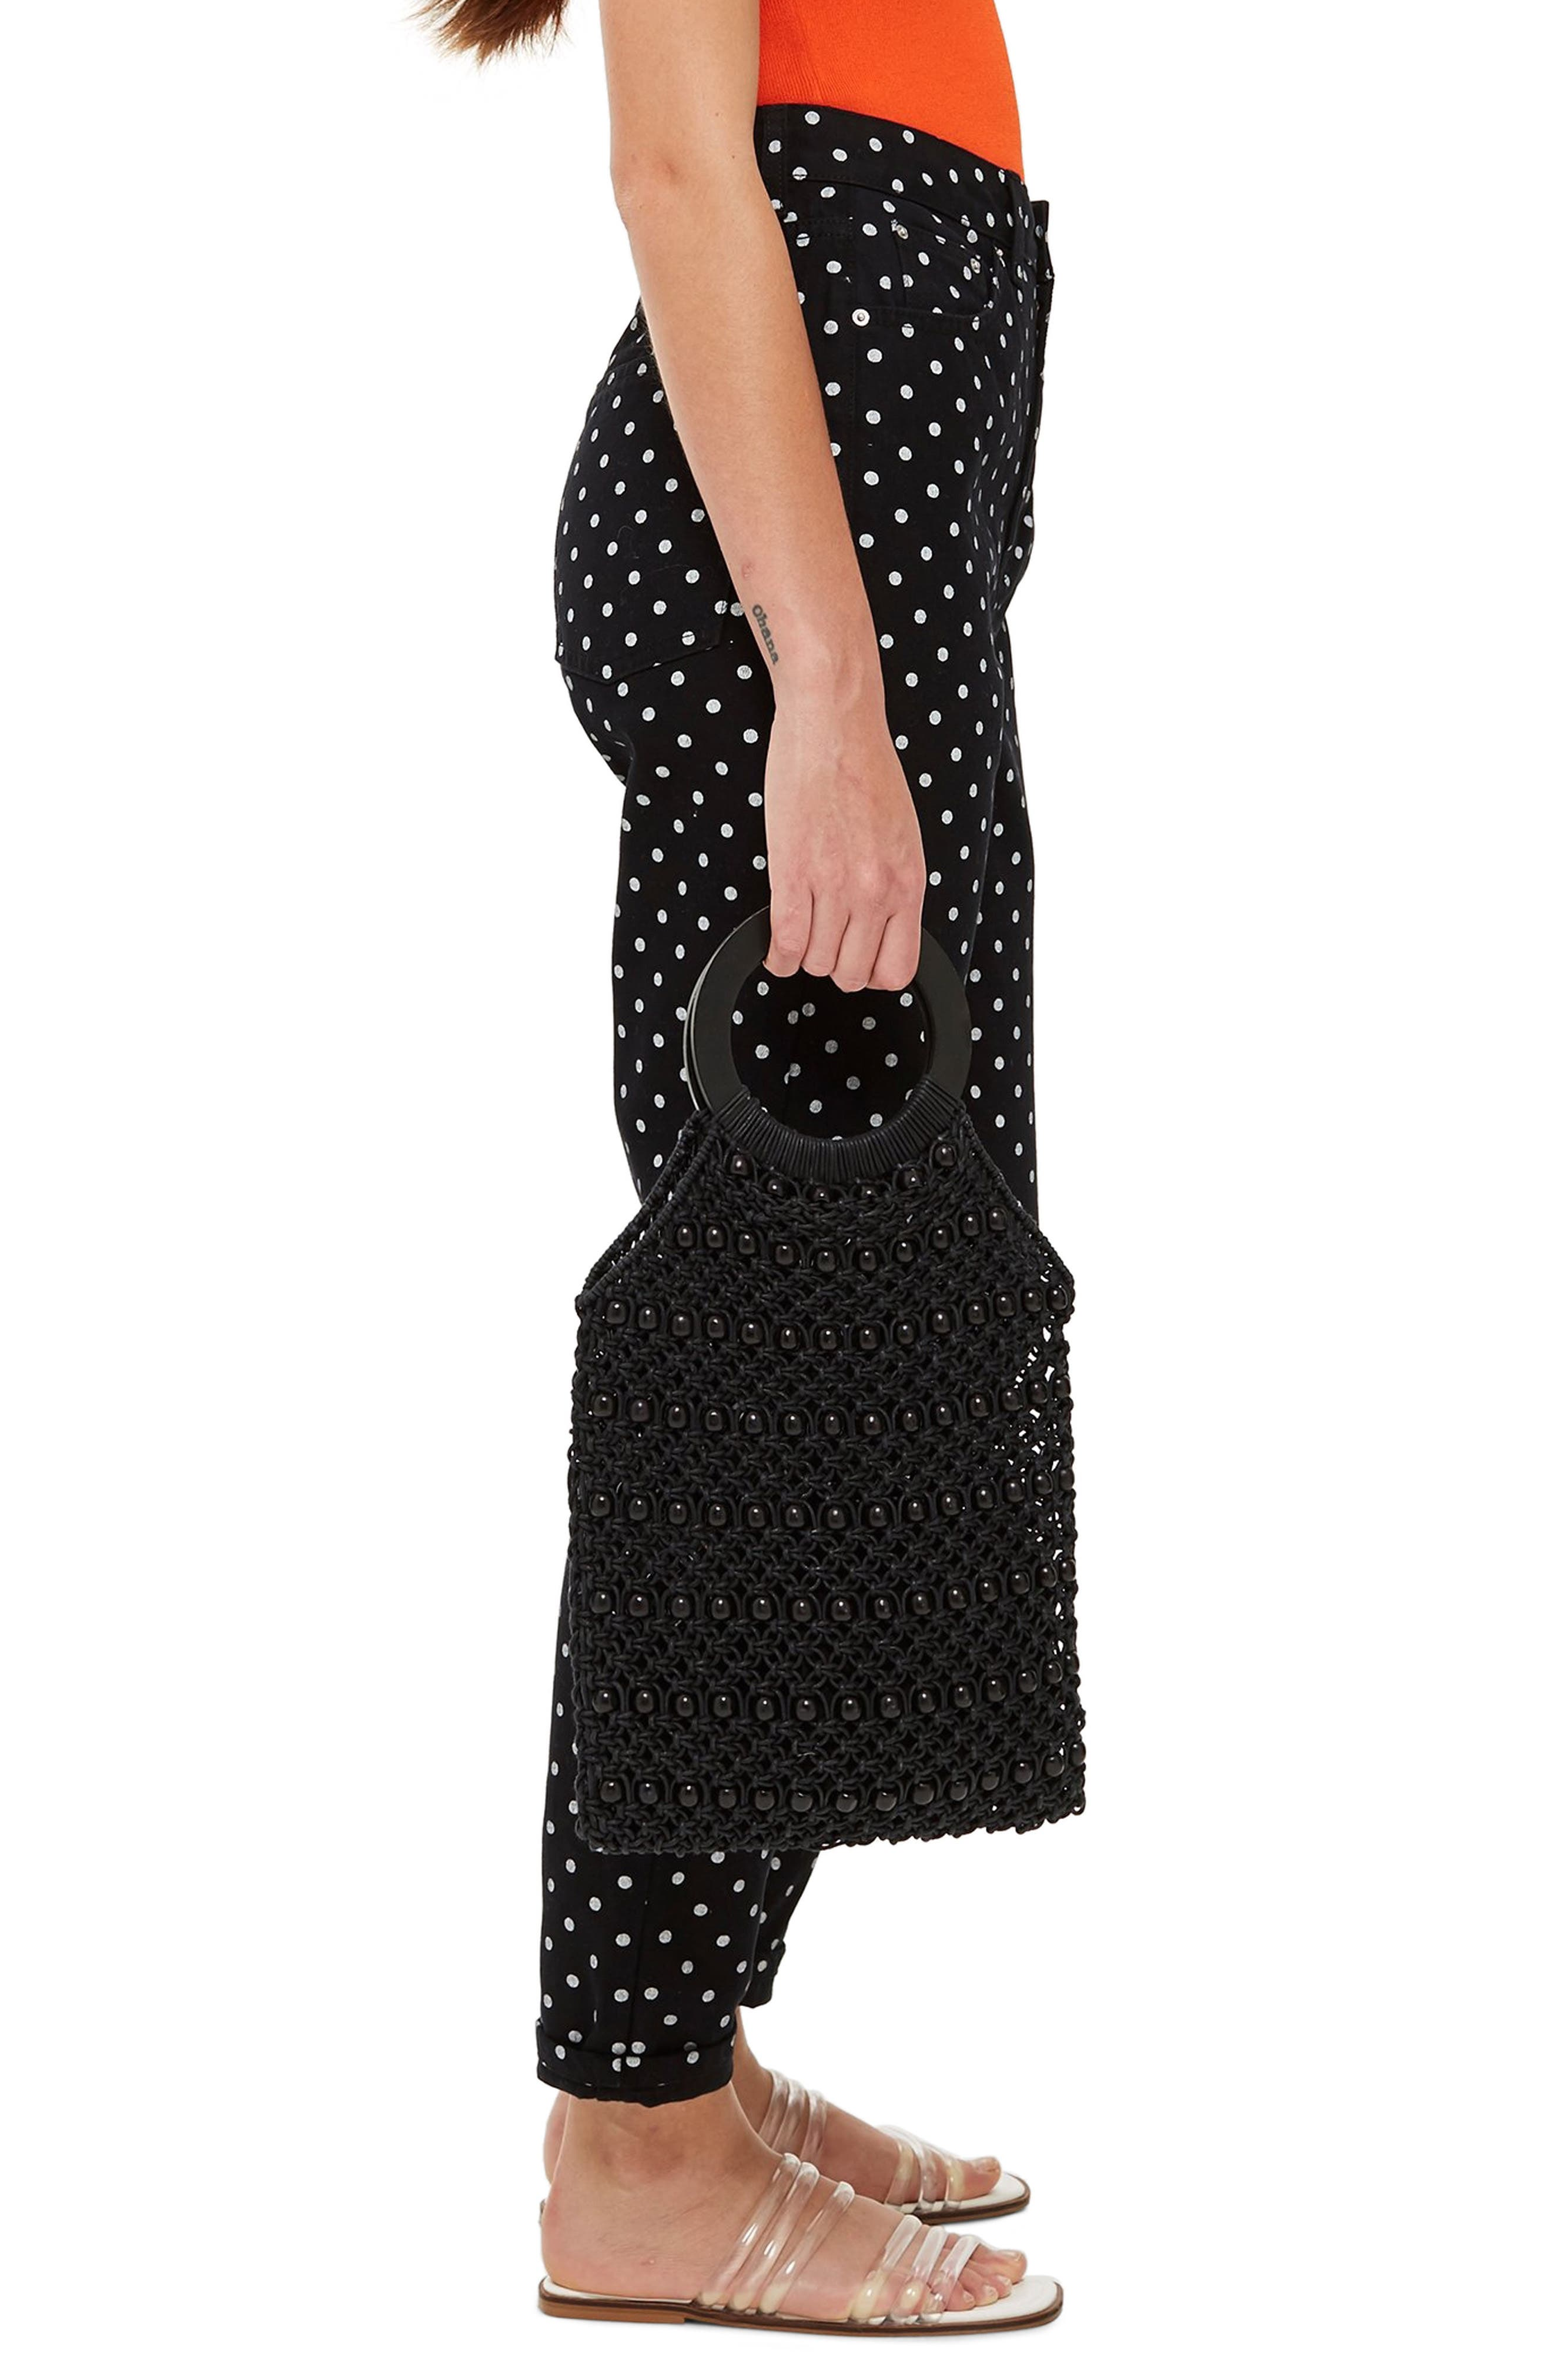 MOTO Polka Dot Mom Jeans,                             Alternate thumbnail 3, color,                             BLACK MULTI